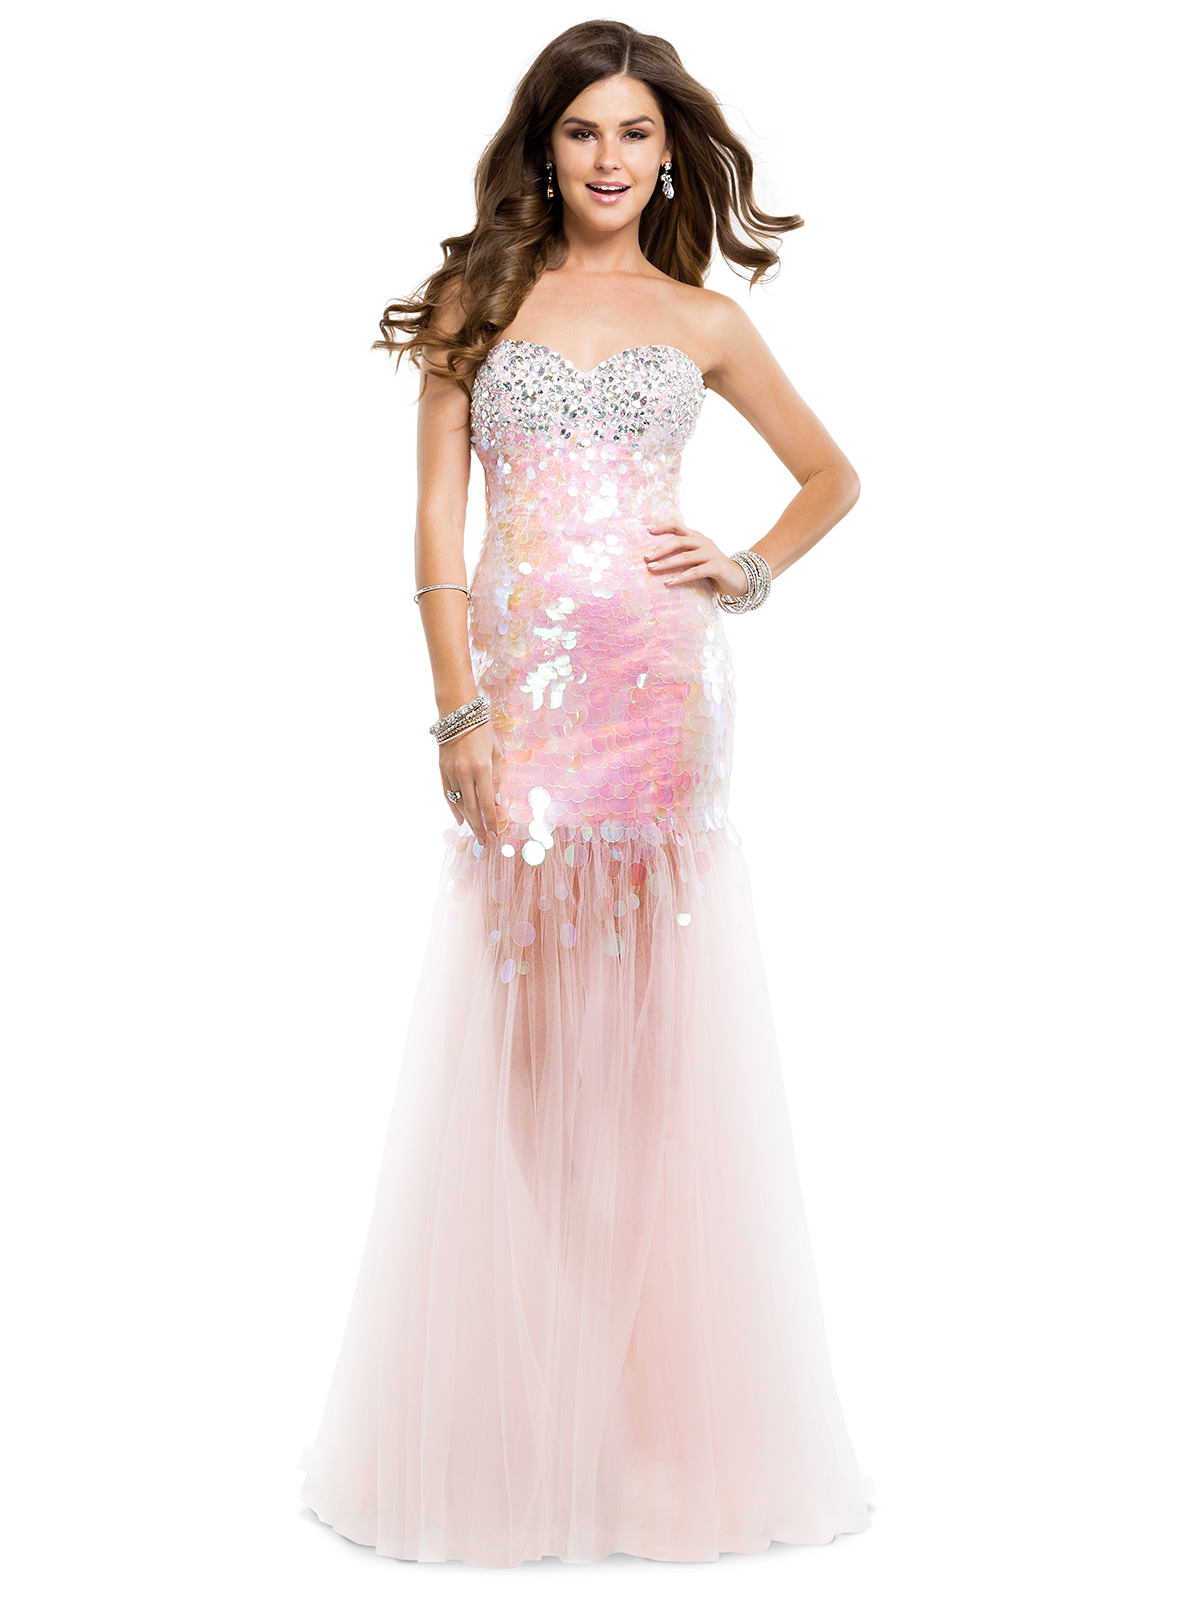 flirt prom dresses Find flirty, sexy styles at unbelievably affordable prices with the selection of short prom dresses & cocktail dresses available from prom dress line.